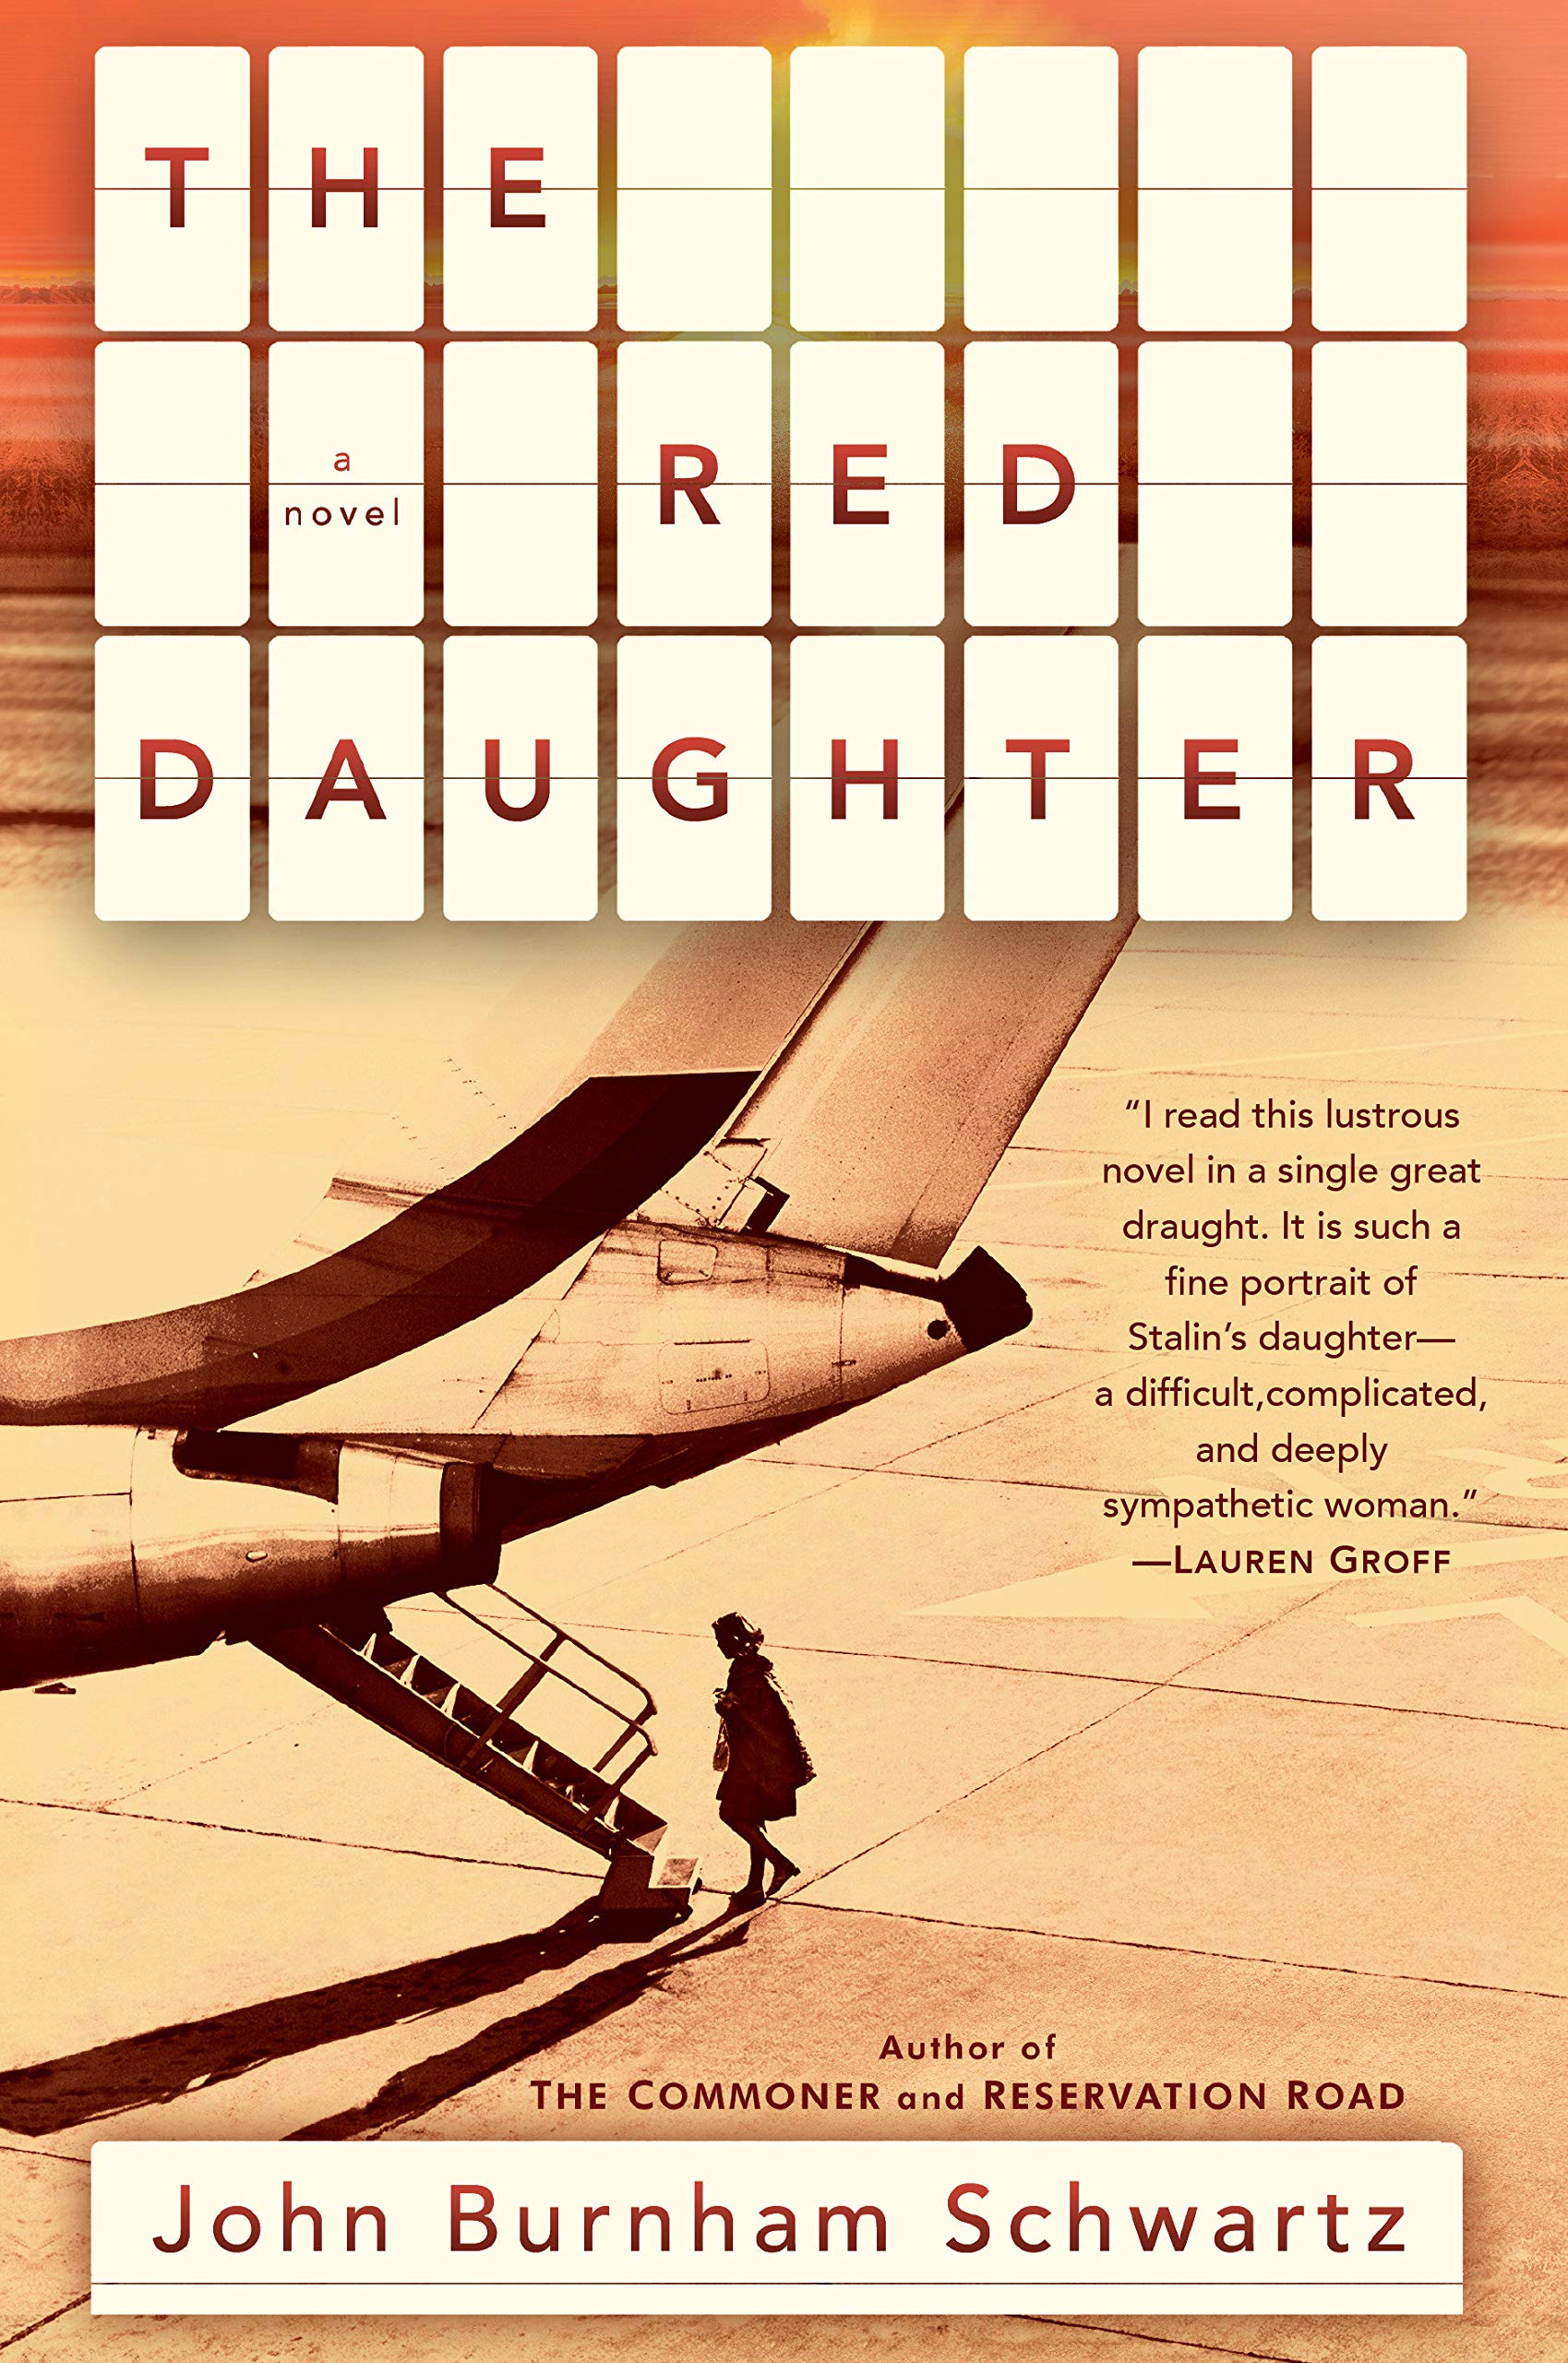 Image result for red daughter schwartz book cover